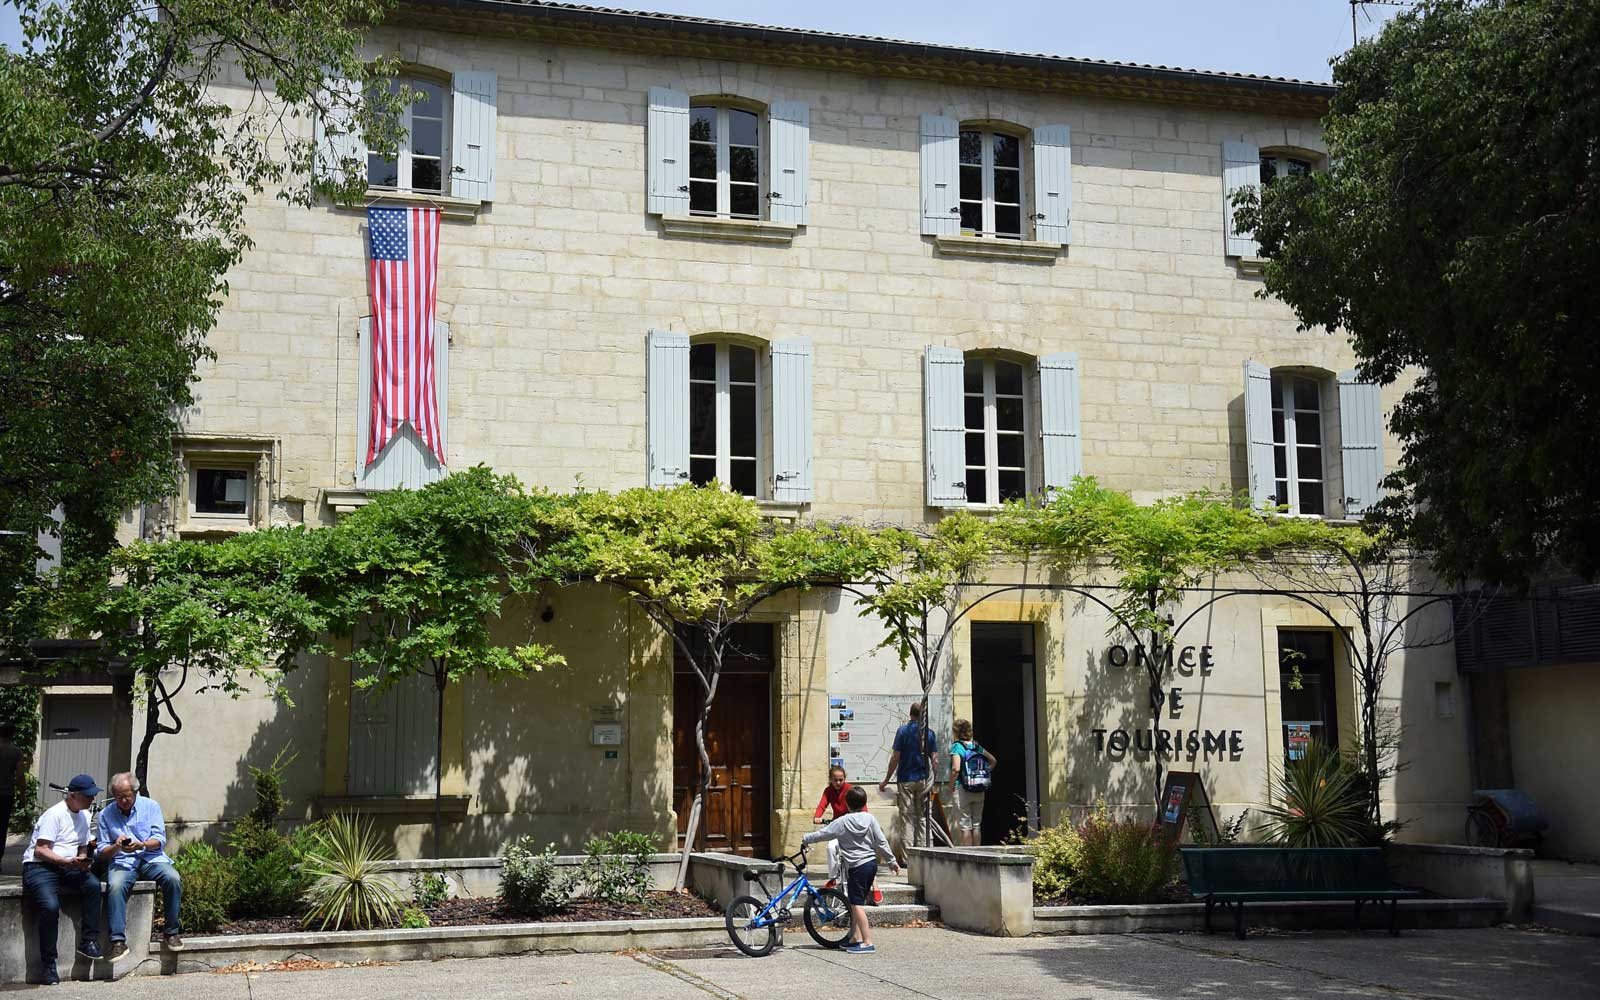 The U.S. flag is displayed on the tourist office of Villeneuve-les-Avignon, southern France on June 15, 2019, as the former US president Barack Obama and his family visit the city for a week's vacation.